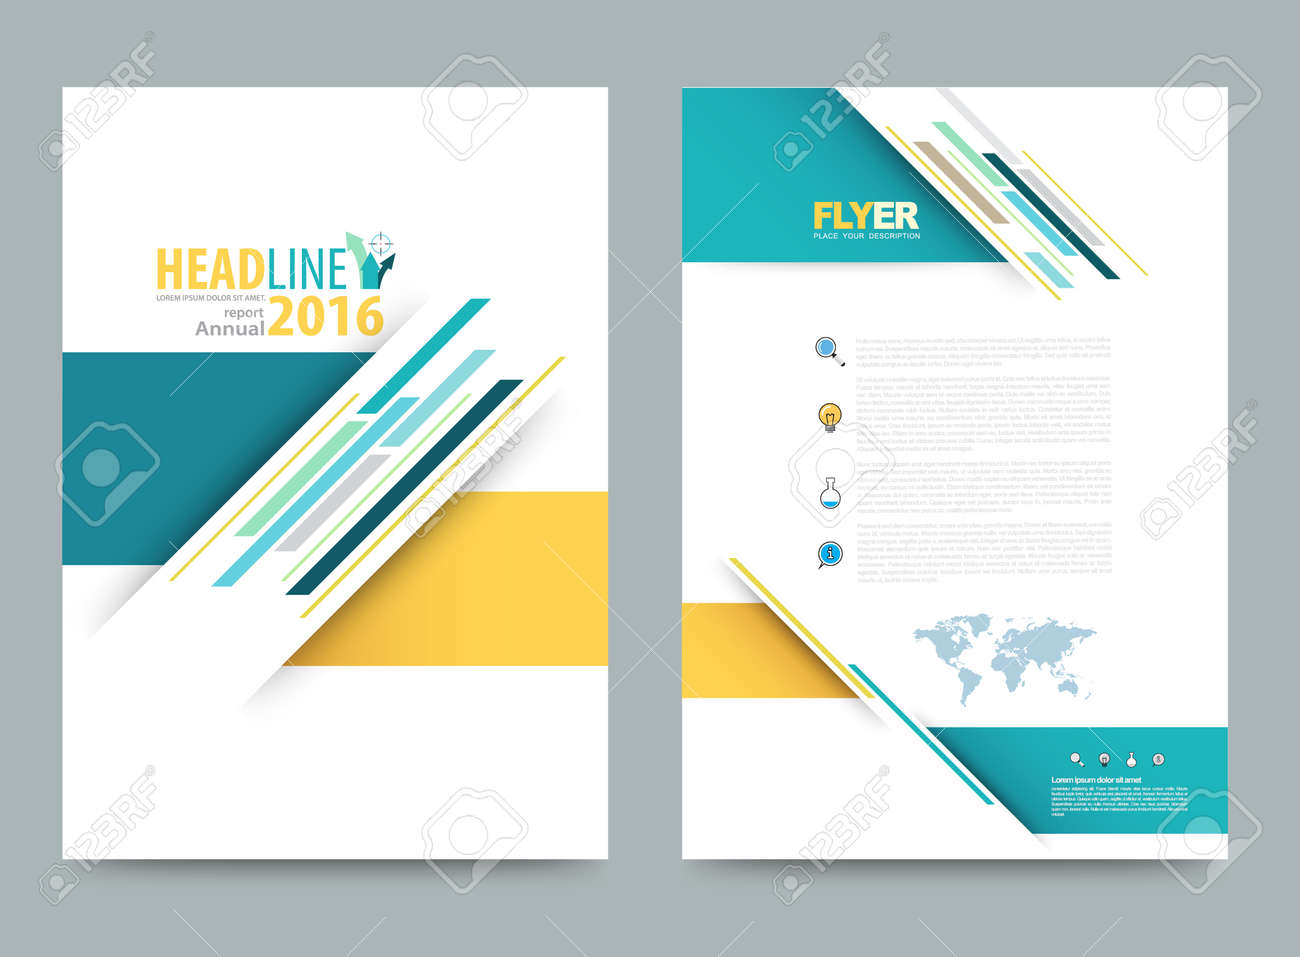 Vector cover design template simply and elegant style, Can use for flyer, brochure, annual report, magazine, book, poster, printing press and web presentation. Vector illustration. Front and back layout A4 size. - 58880892